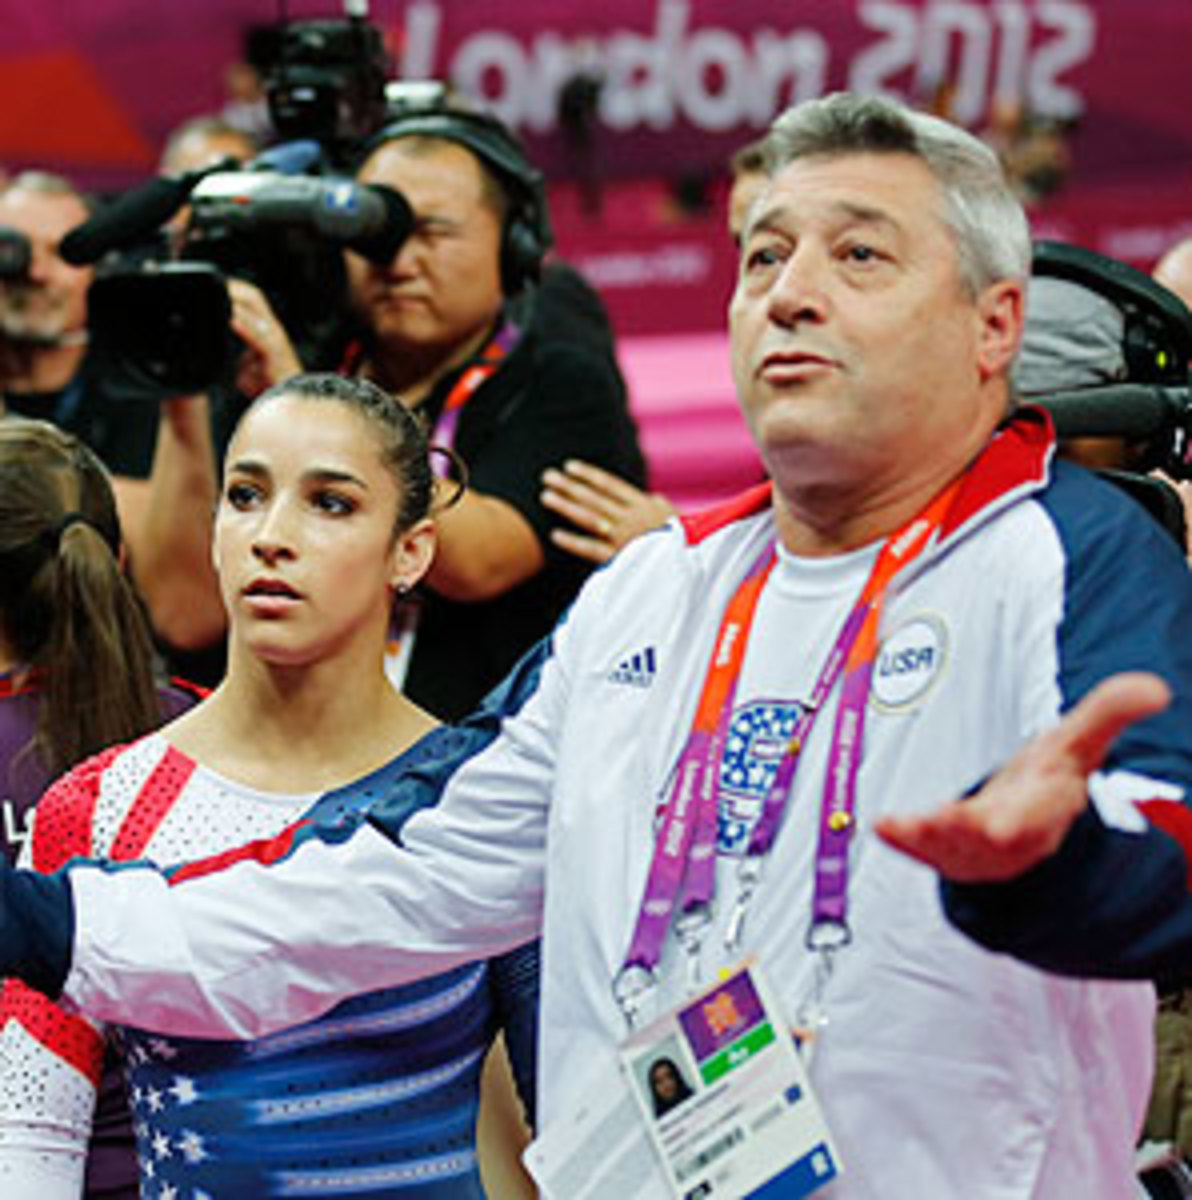 raisman-inquiry.jpg